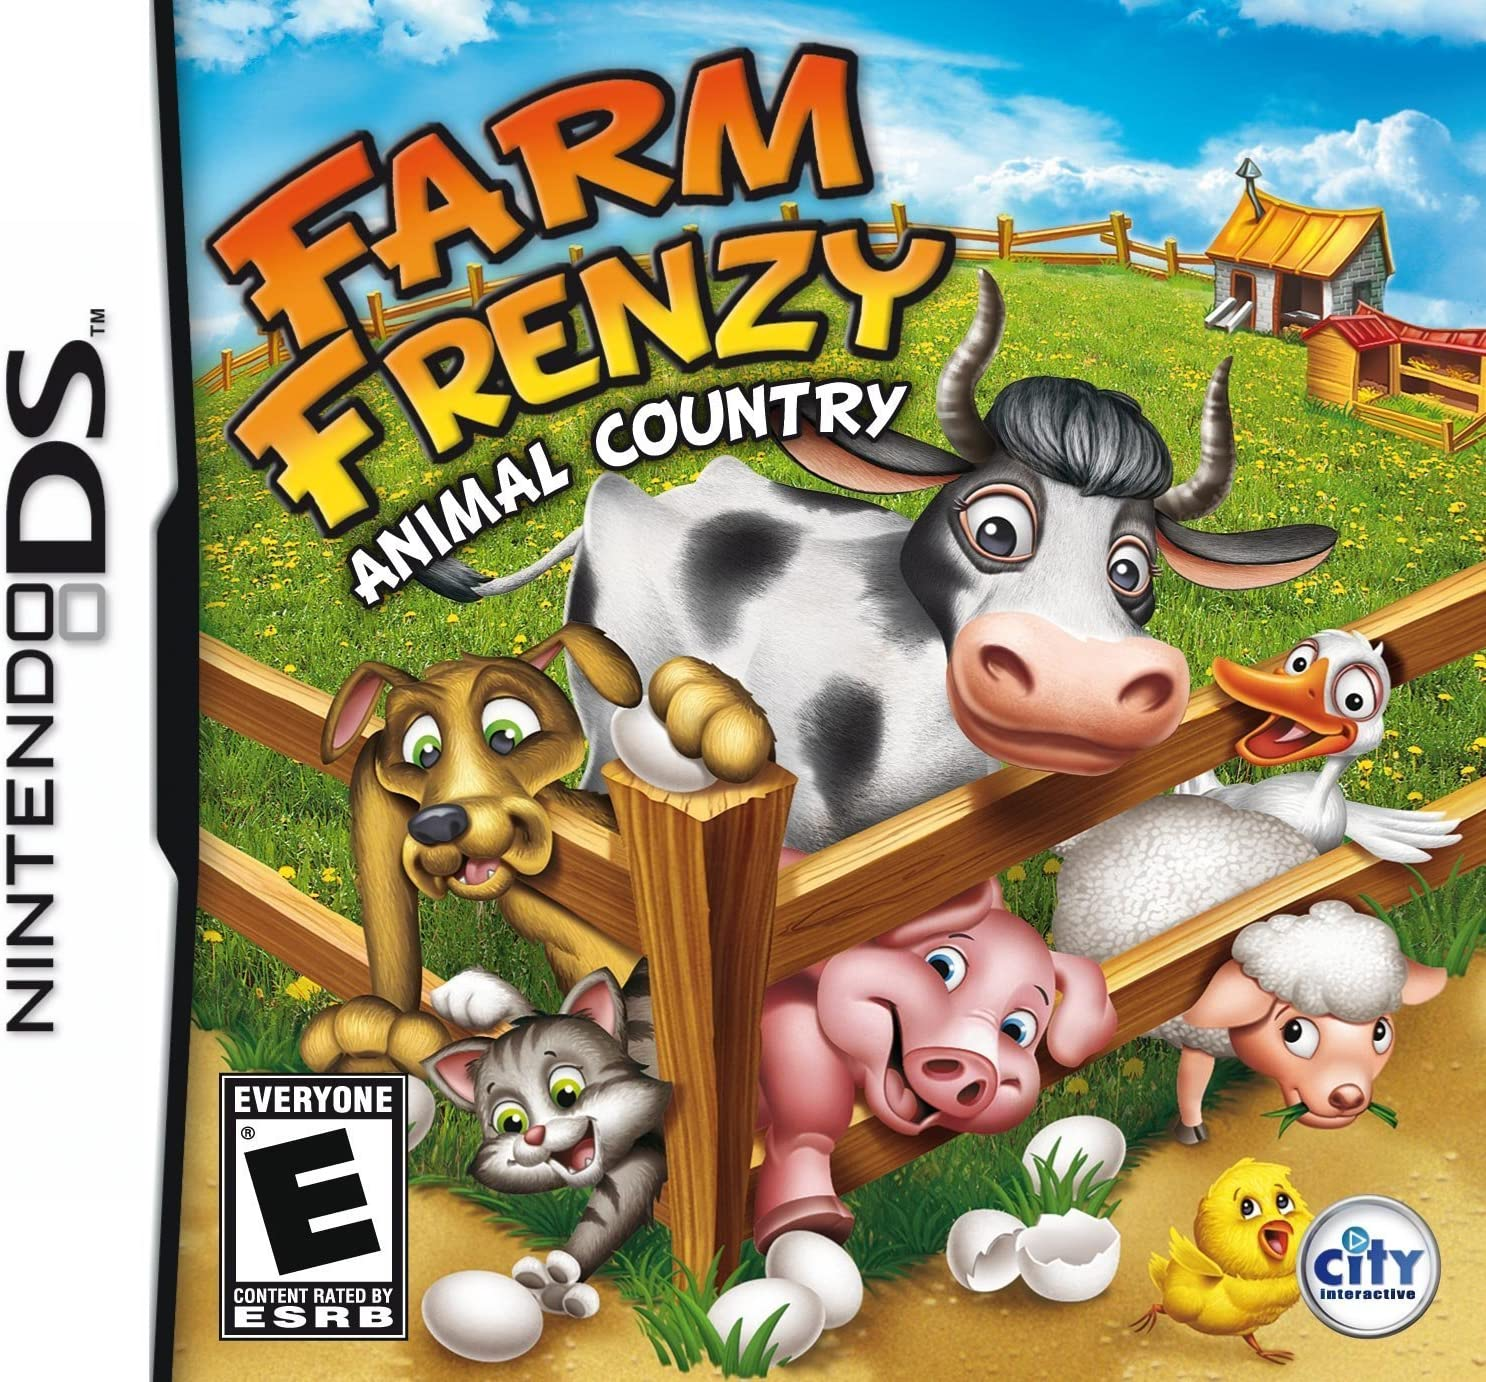 Amazoncom Farm Frenzy Animal Country Nintendo DS Video Games - Country games